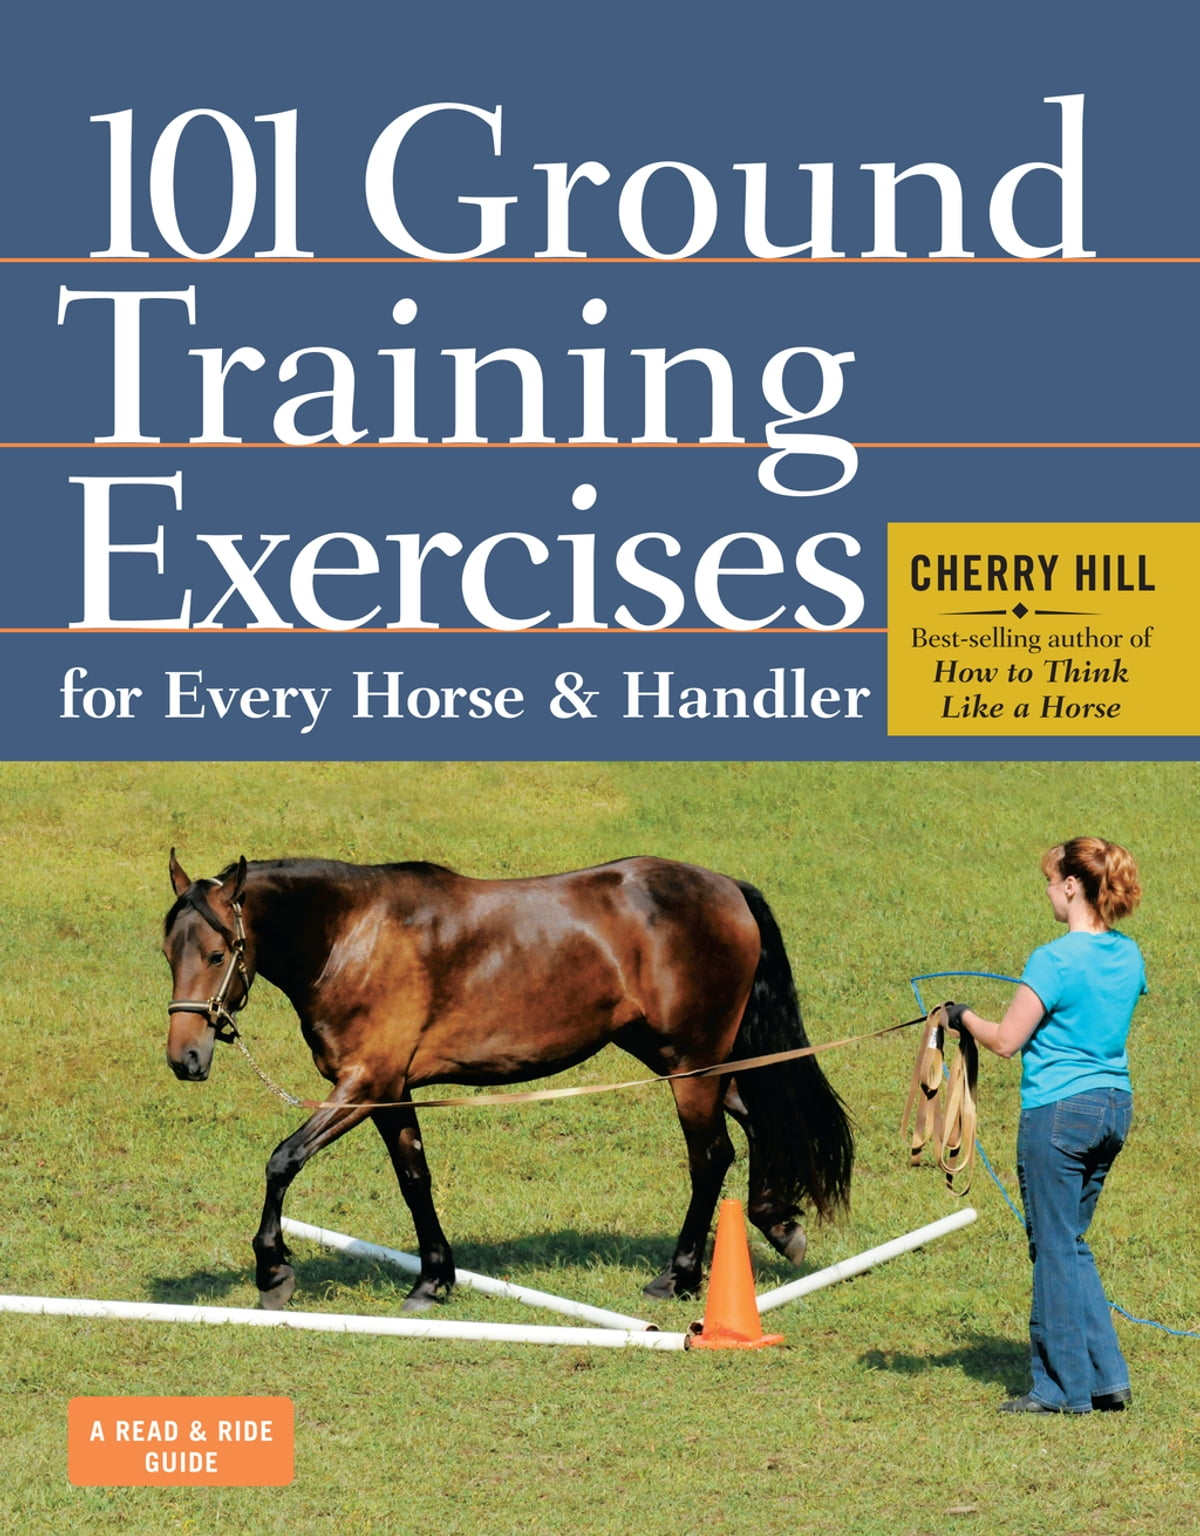 101 Ground Training Exercises for Every Horse & Handler eBook by Cherry  Hill - 9781603428330 | Rakuten Kobo